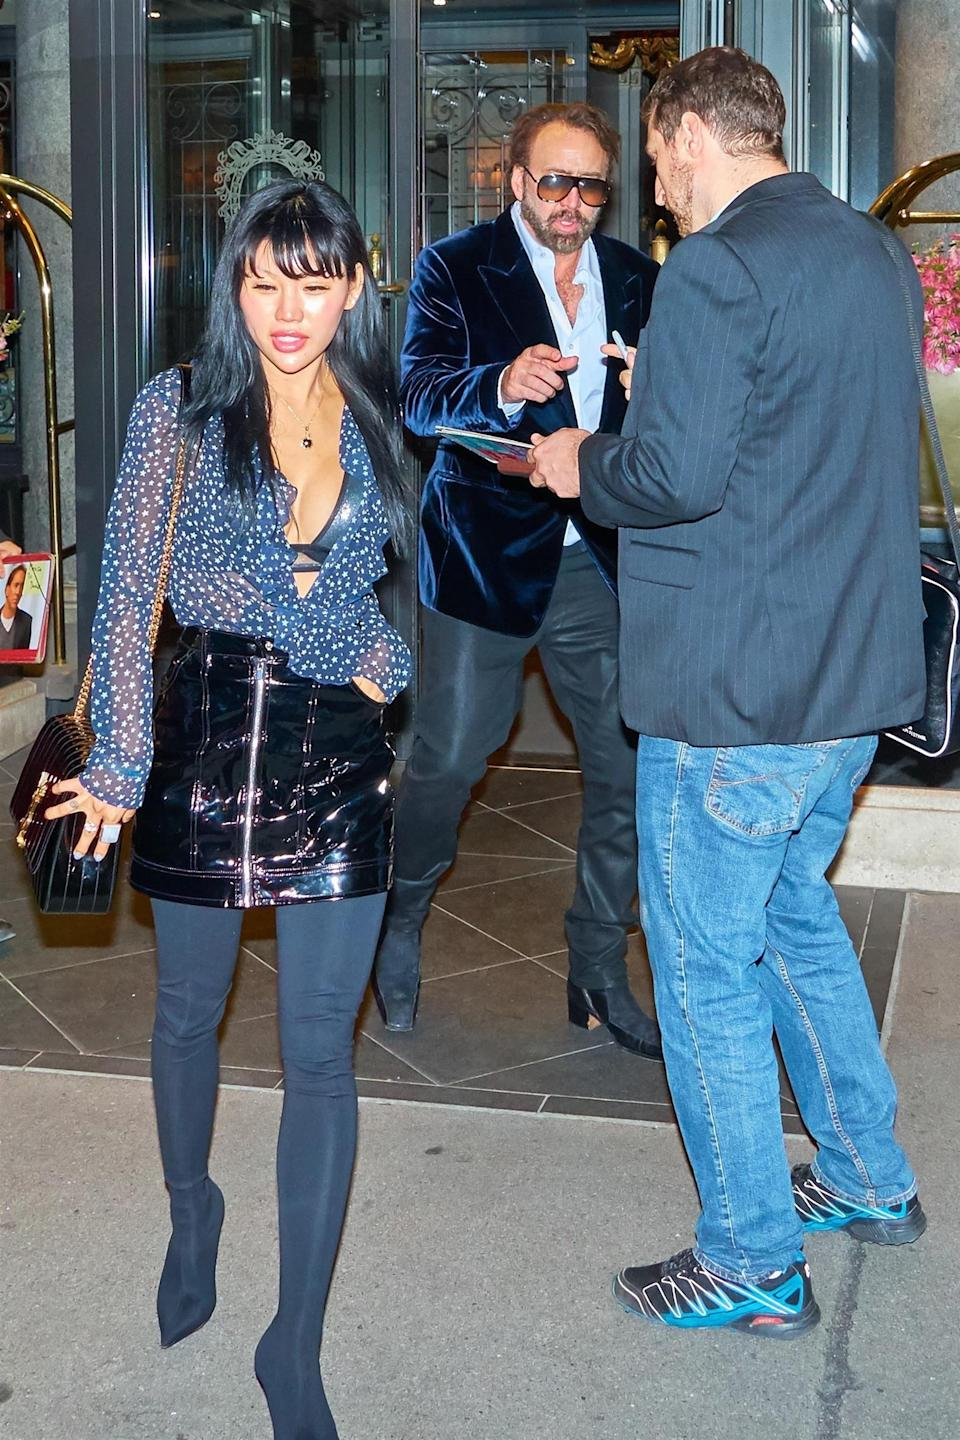 Nicolas Cage and a woman identified as Vickie Park in Vienna last month. (Photo: Backgrid)